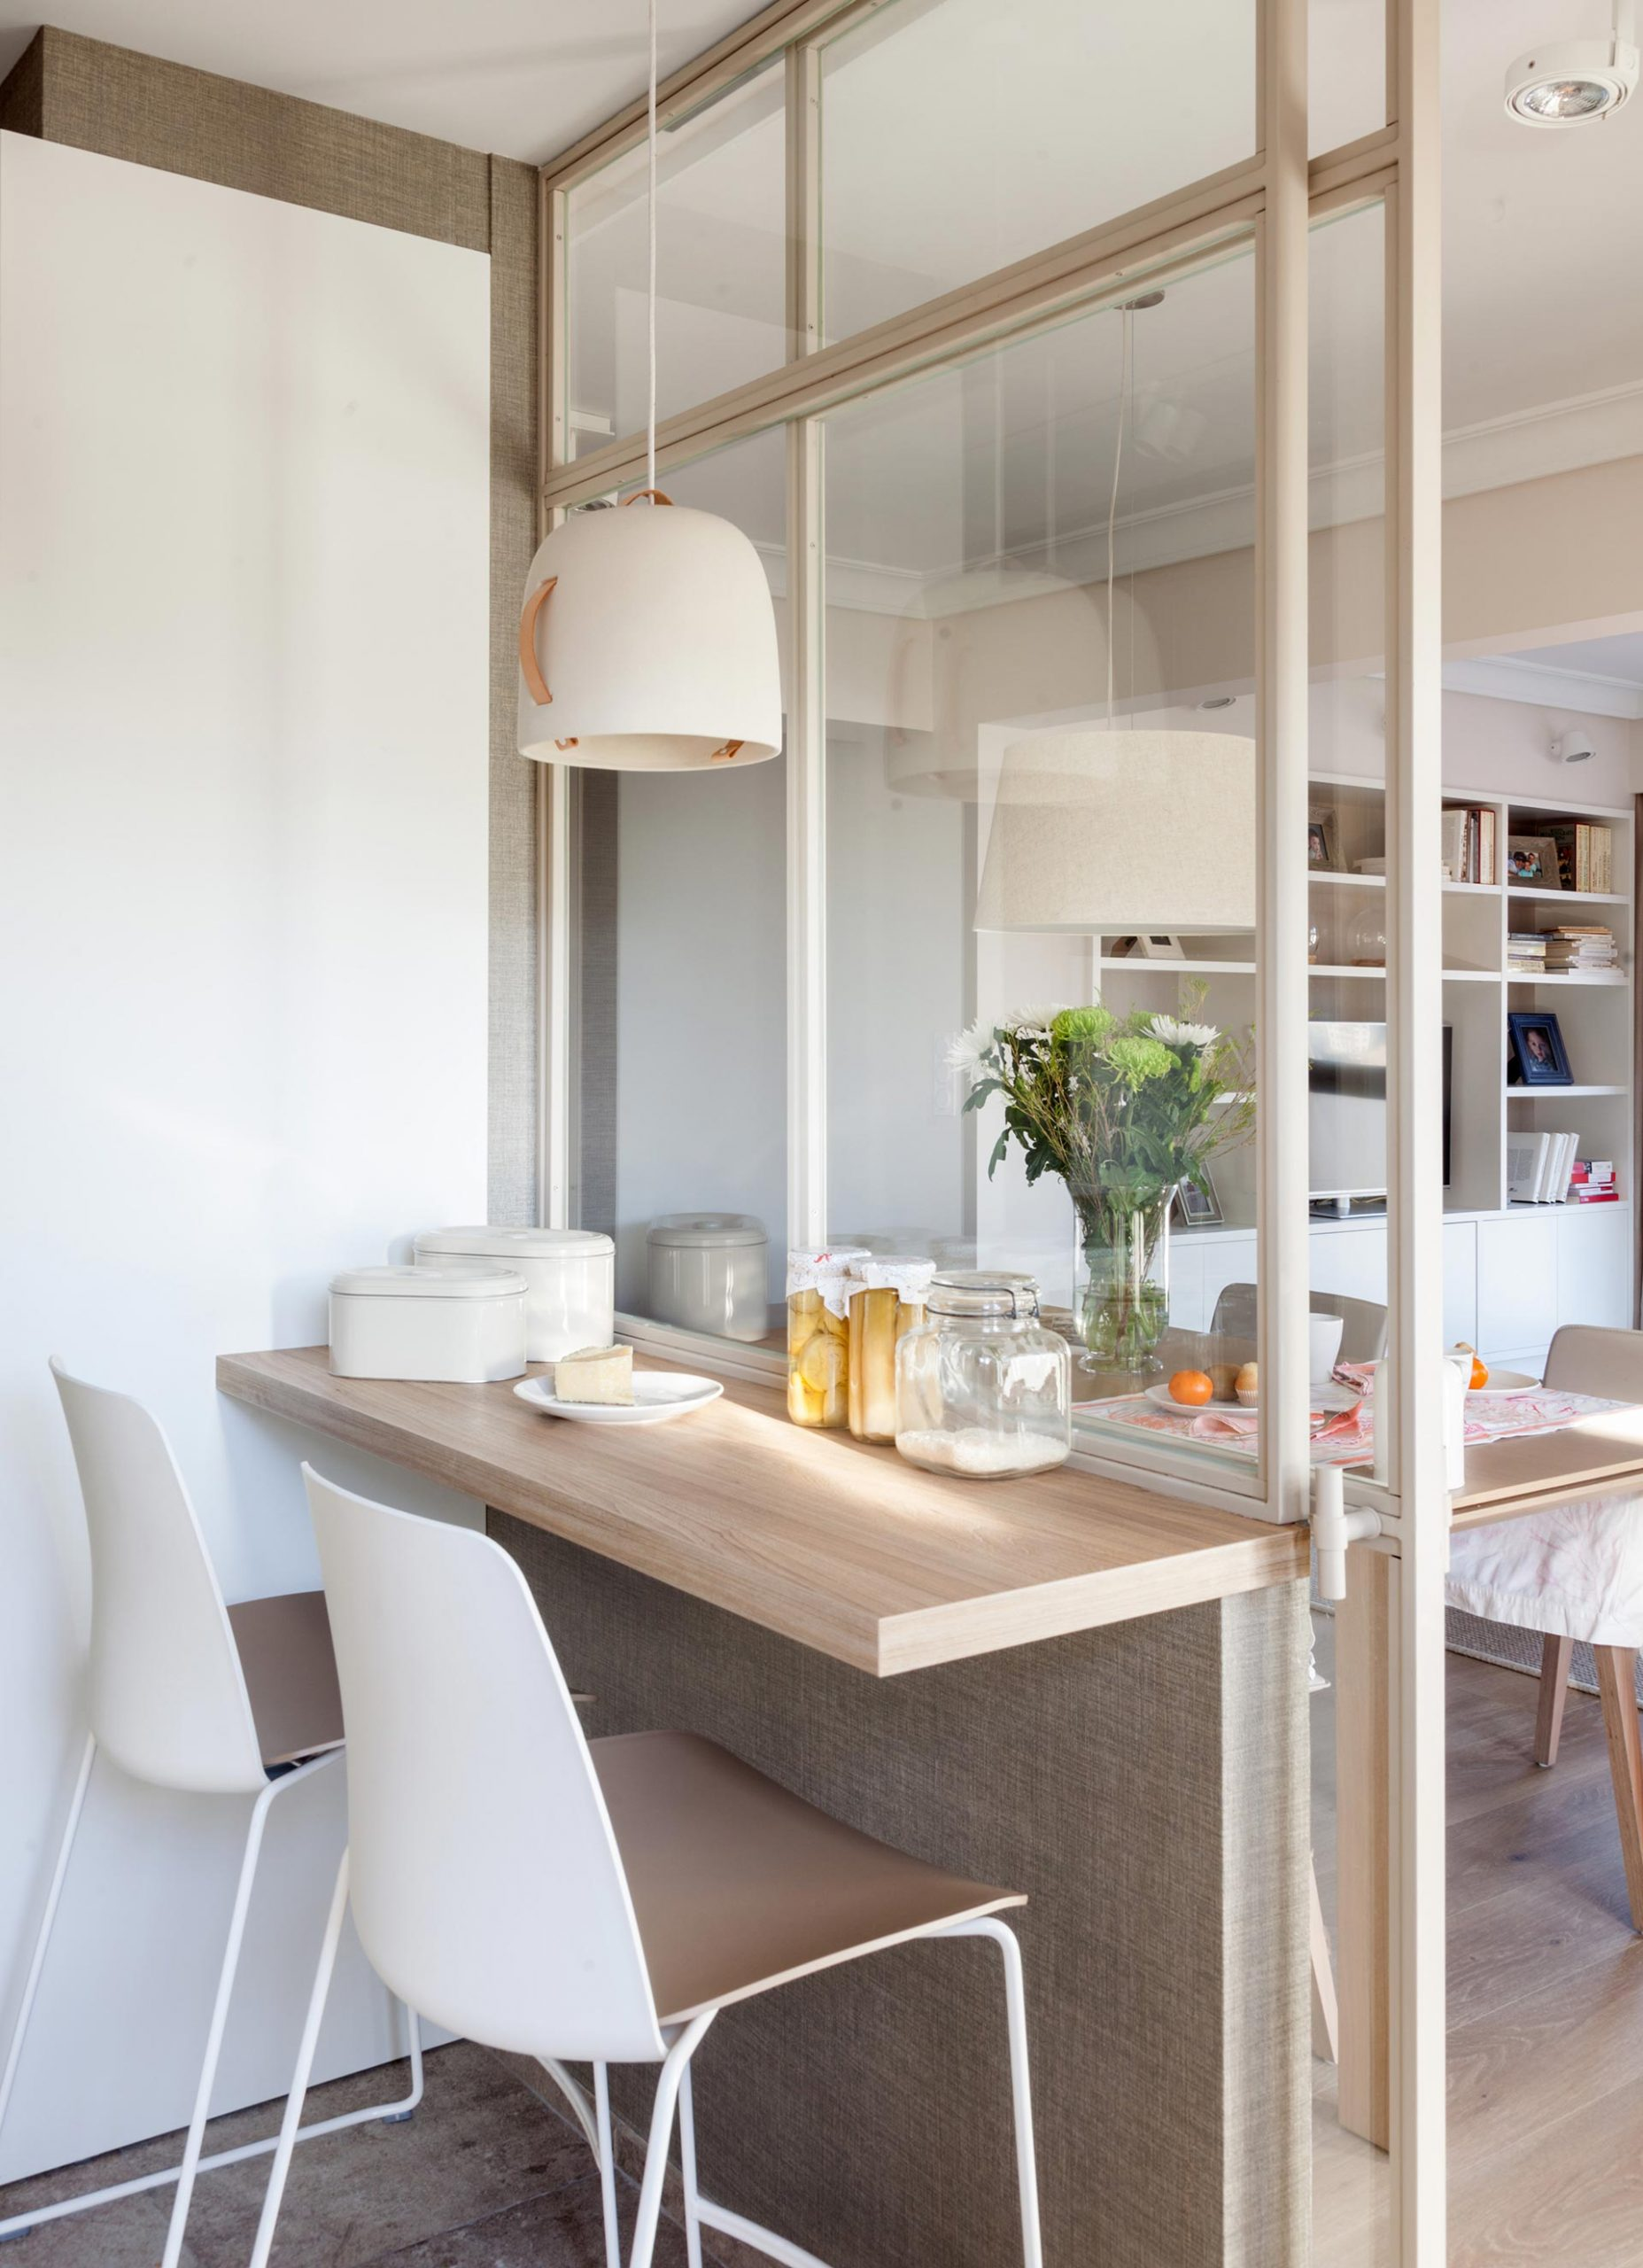 Santos kitchens in small rooms, by the designer Natalia Zubizarreta